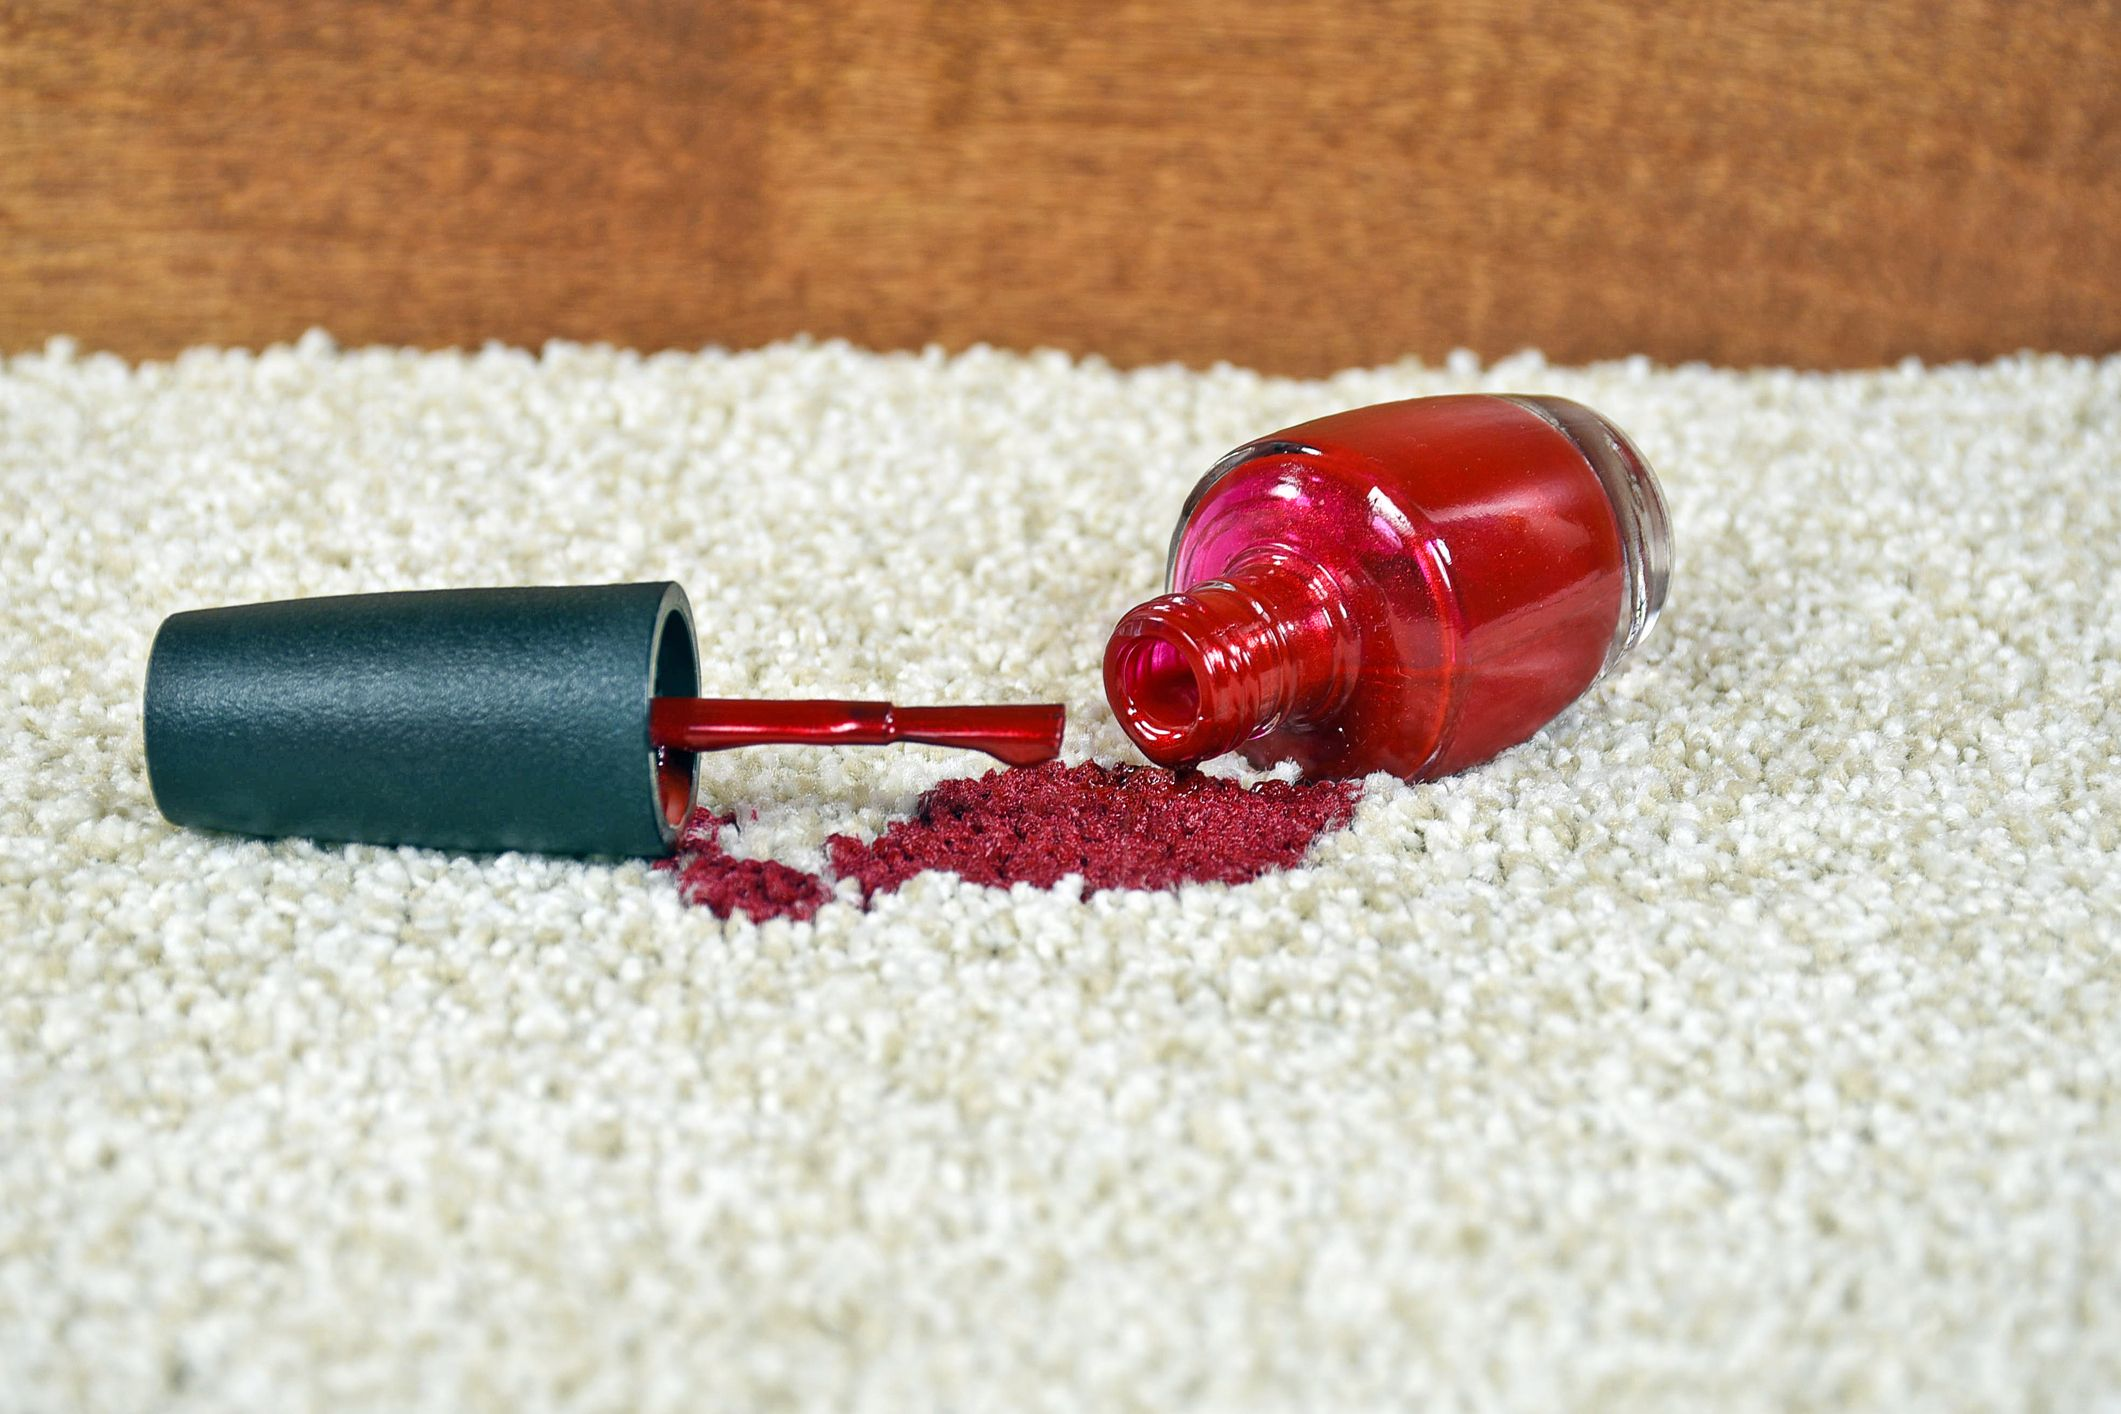 Nail Polish Out Of Your Carpet